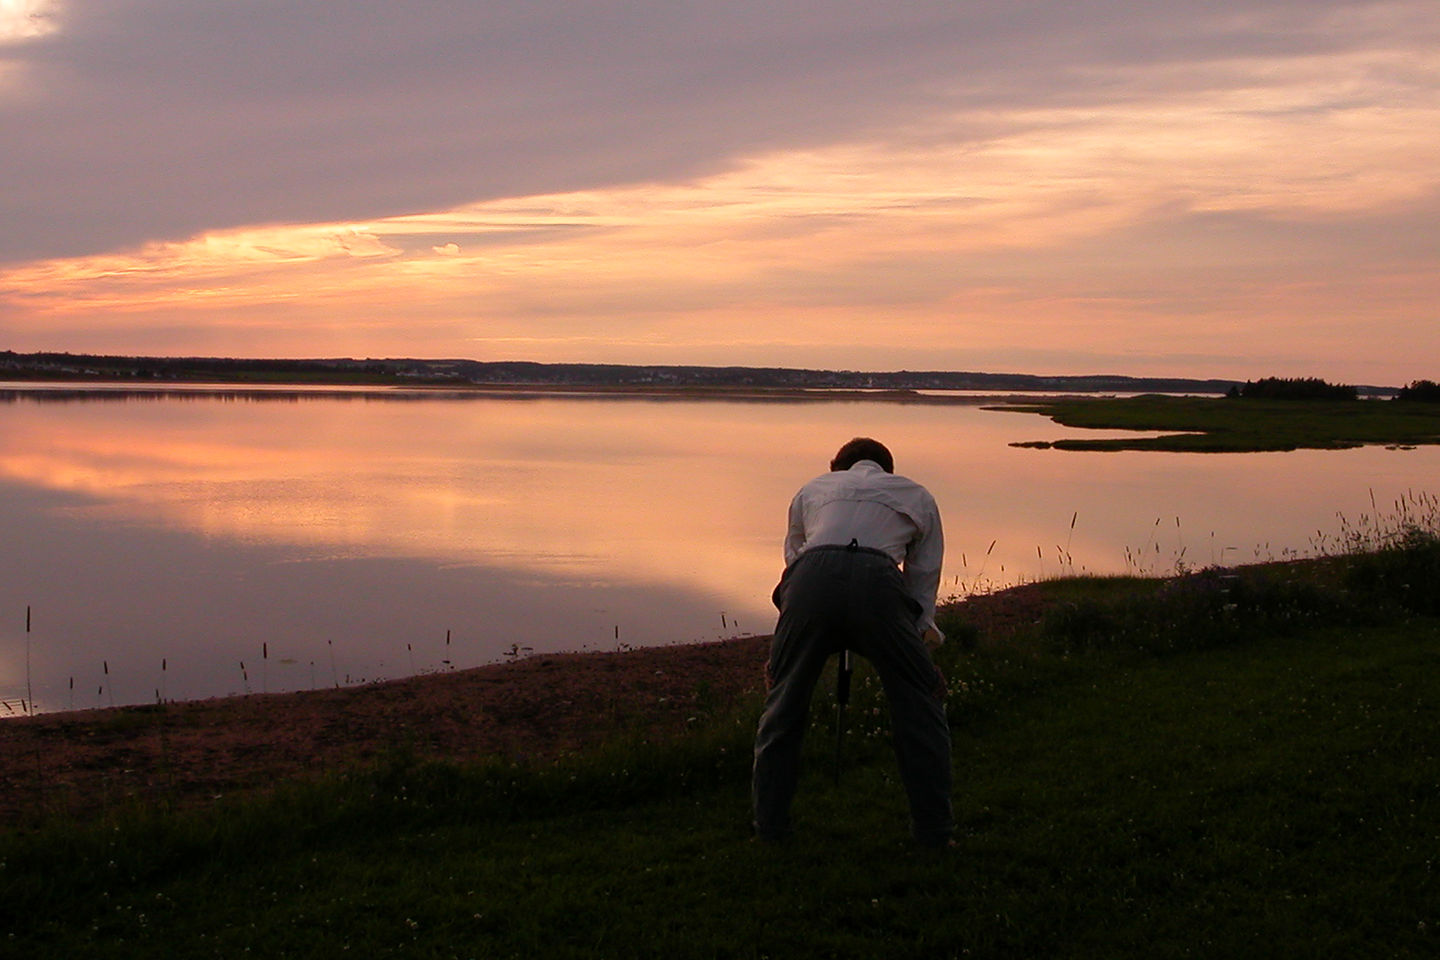 Herb photographing sunset from campsite